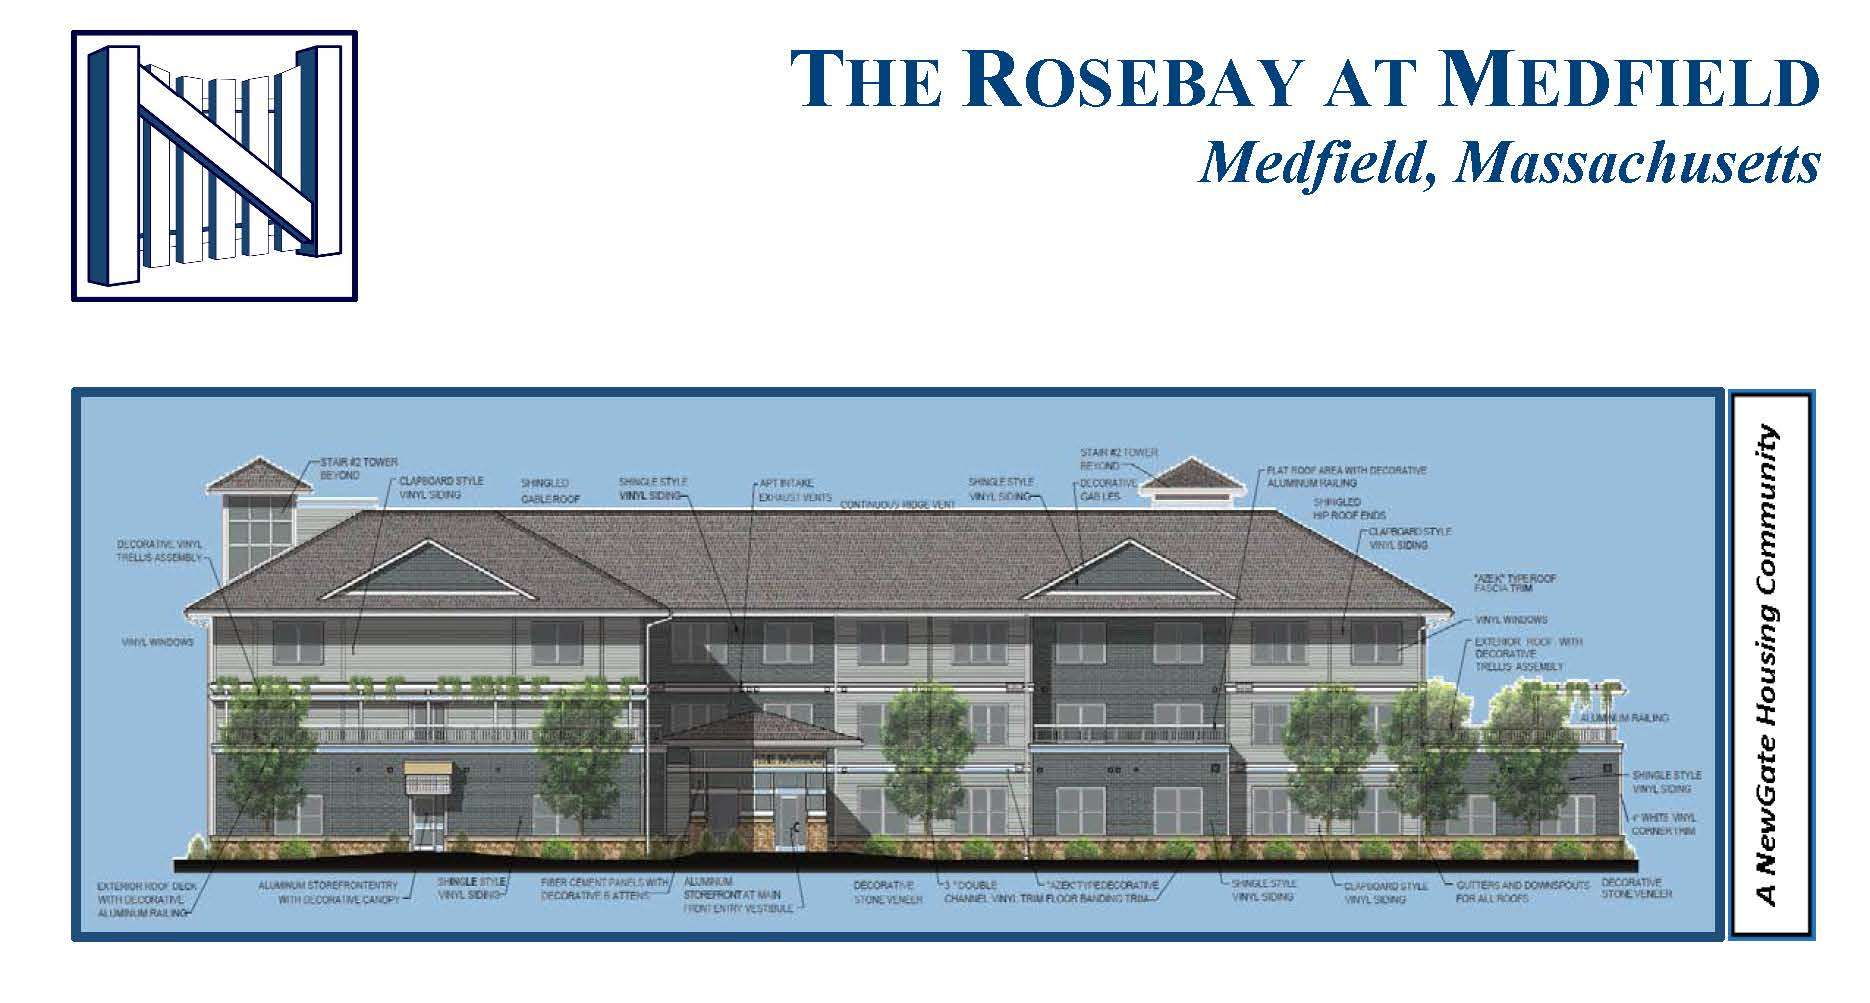 Rosebay cover picture